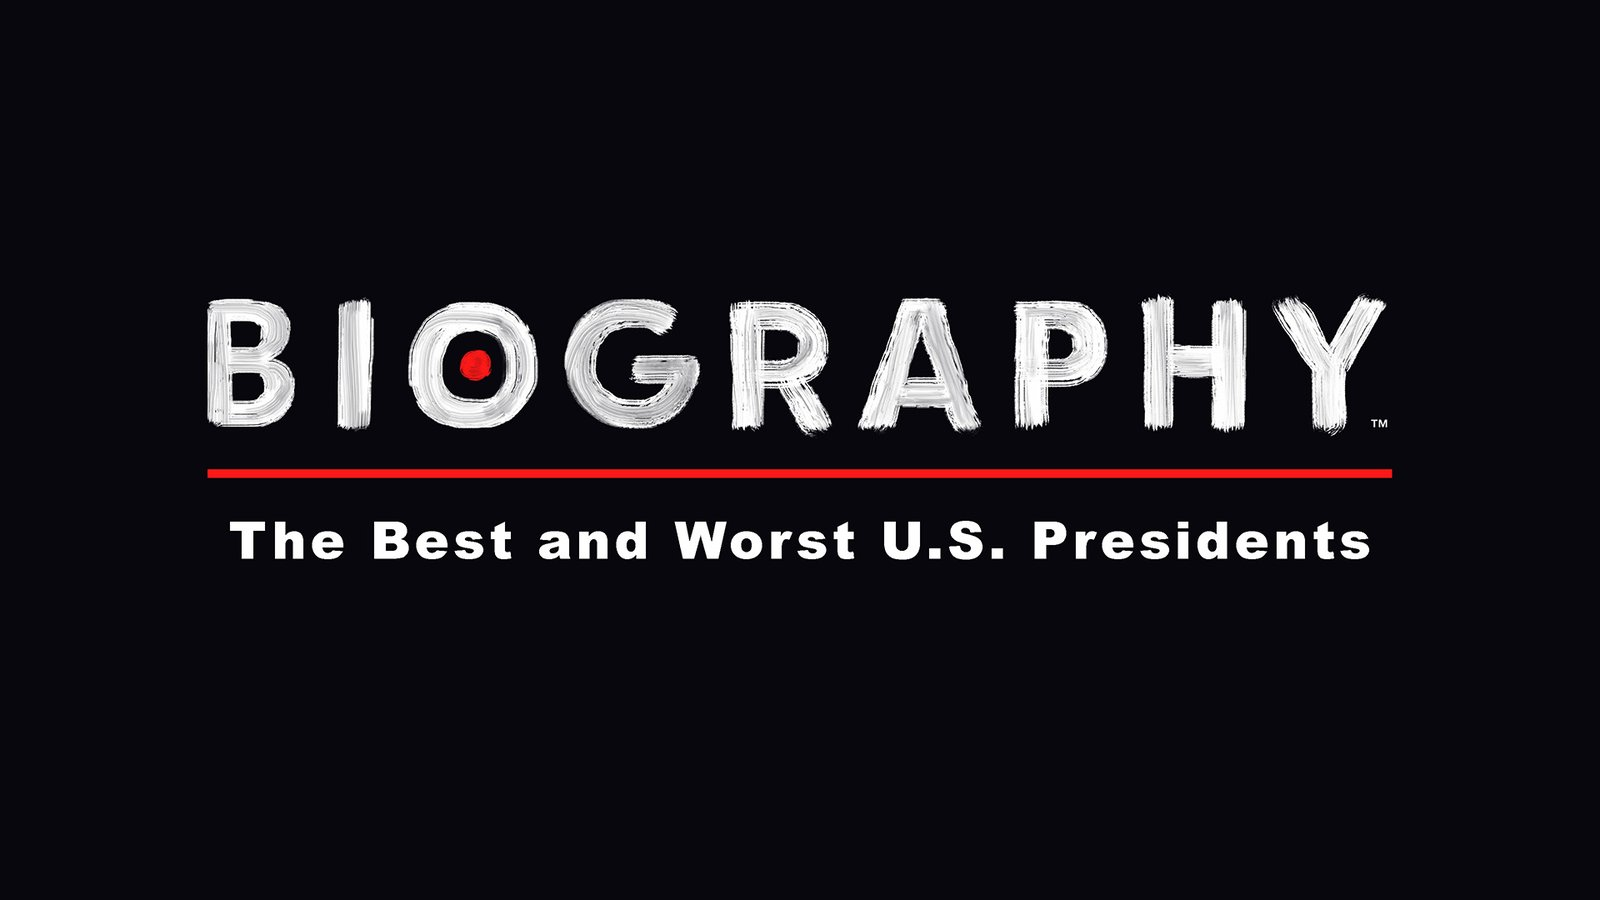 The Best and Worst U.S. Presidents